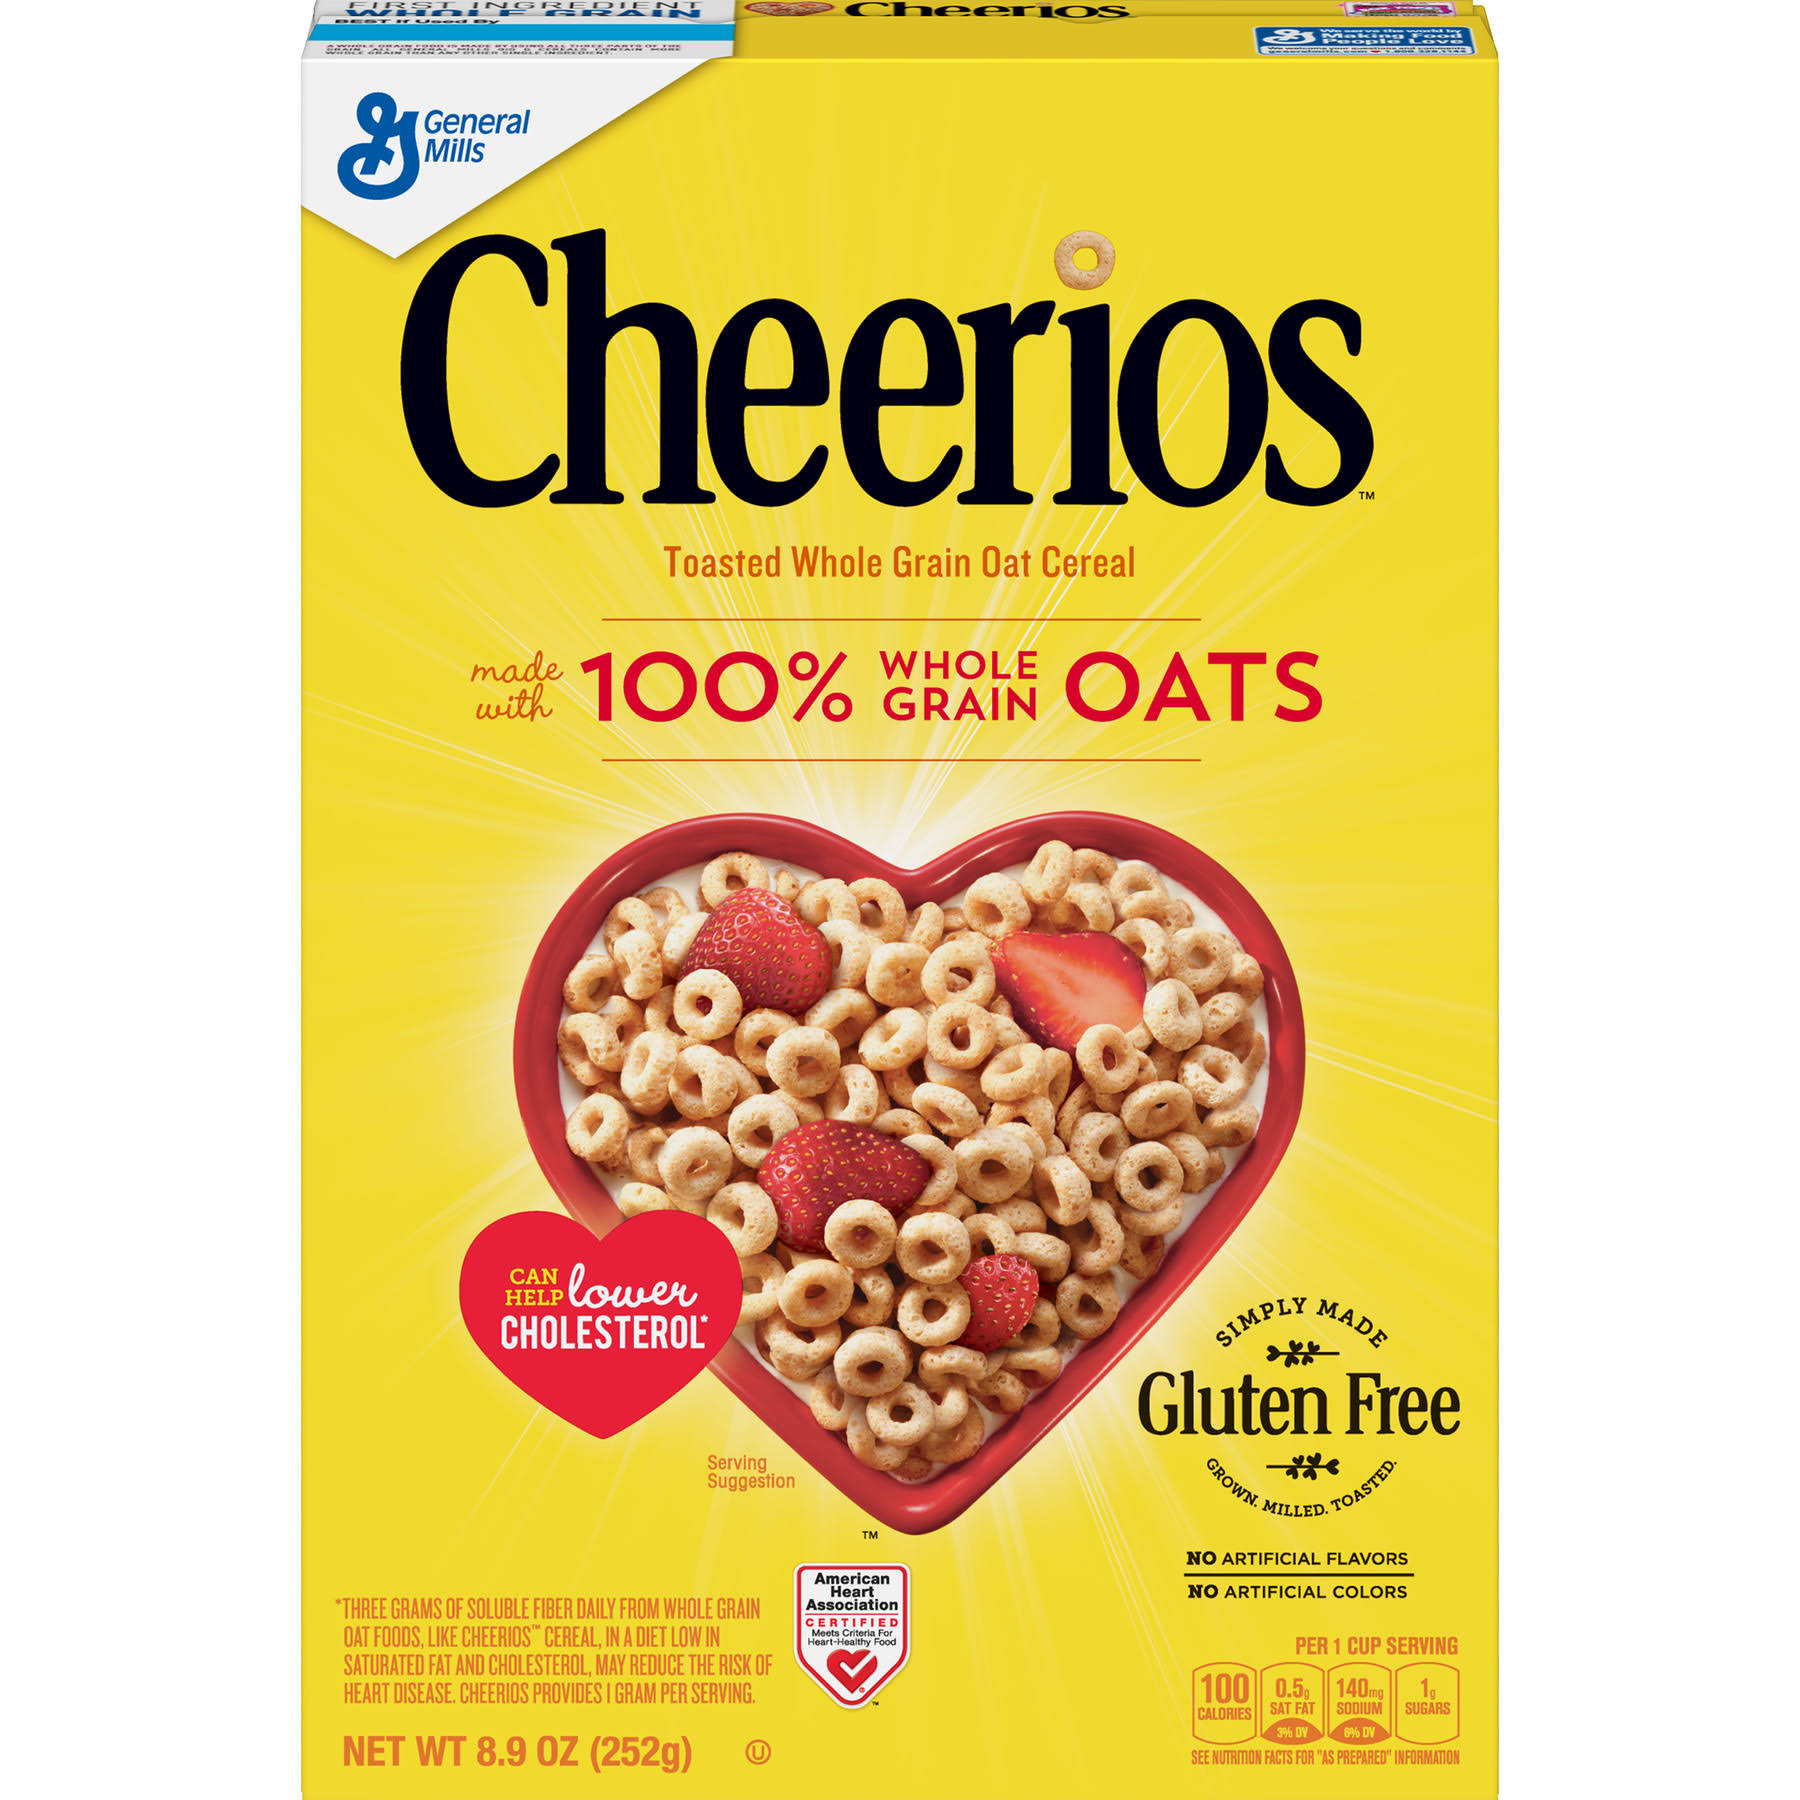 General Mills Cheerios Toasted Whole Grain Oat Cereal - 8.9 oz